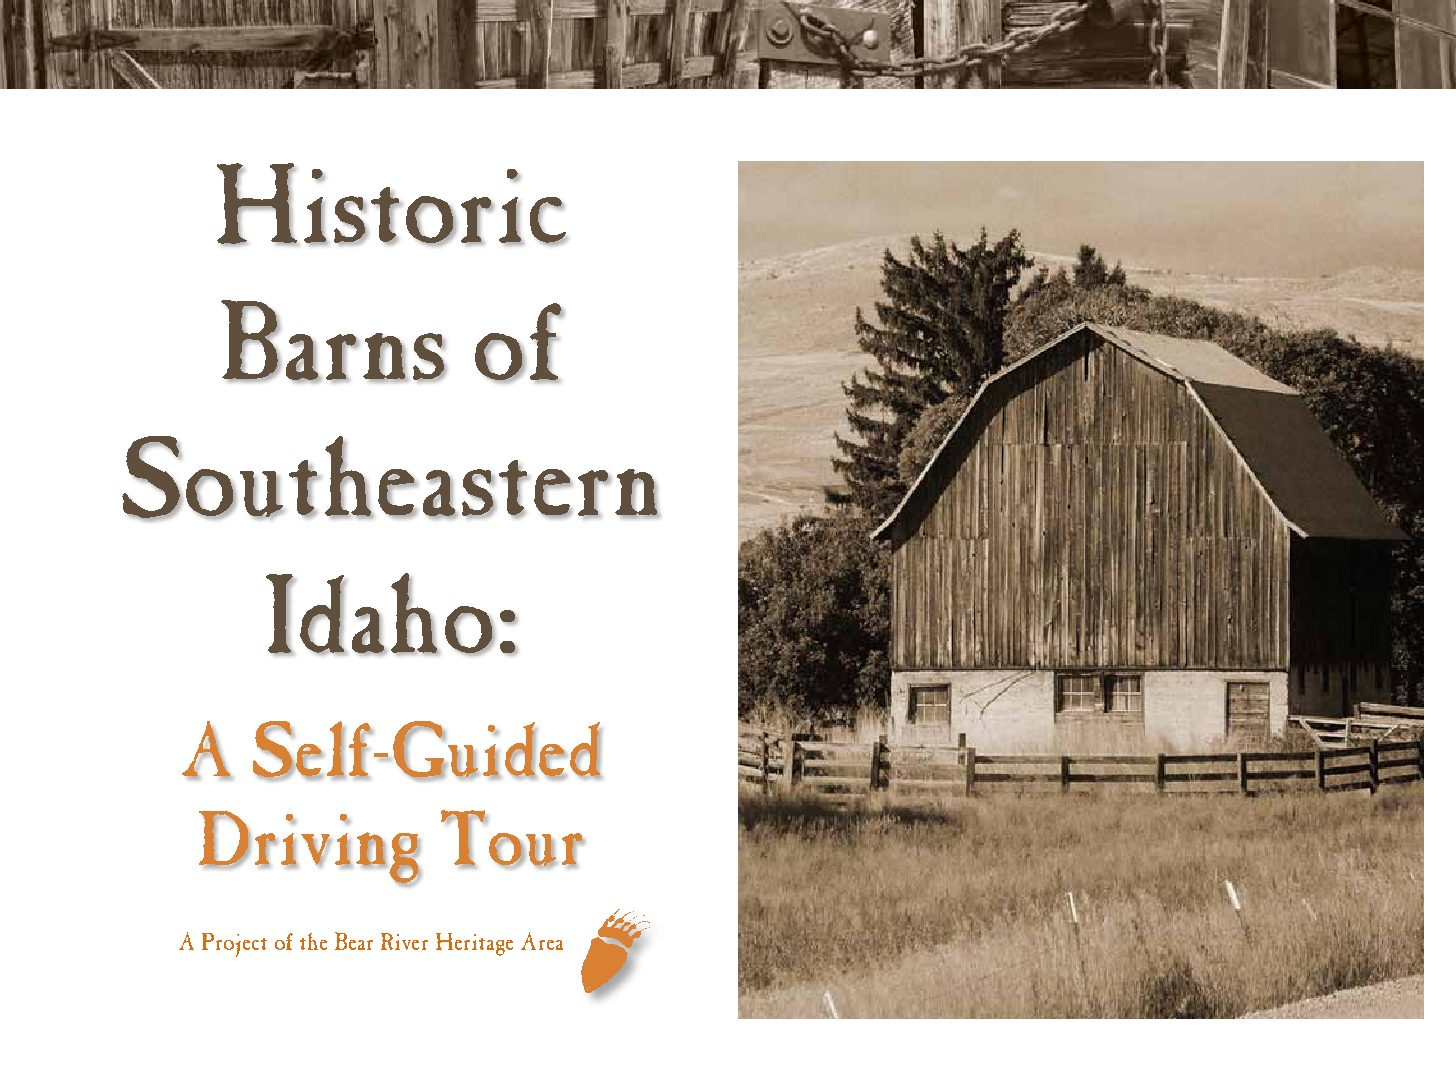 Historic Barns of Southeastern Idaho